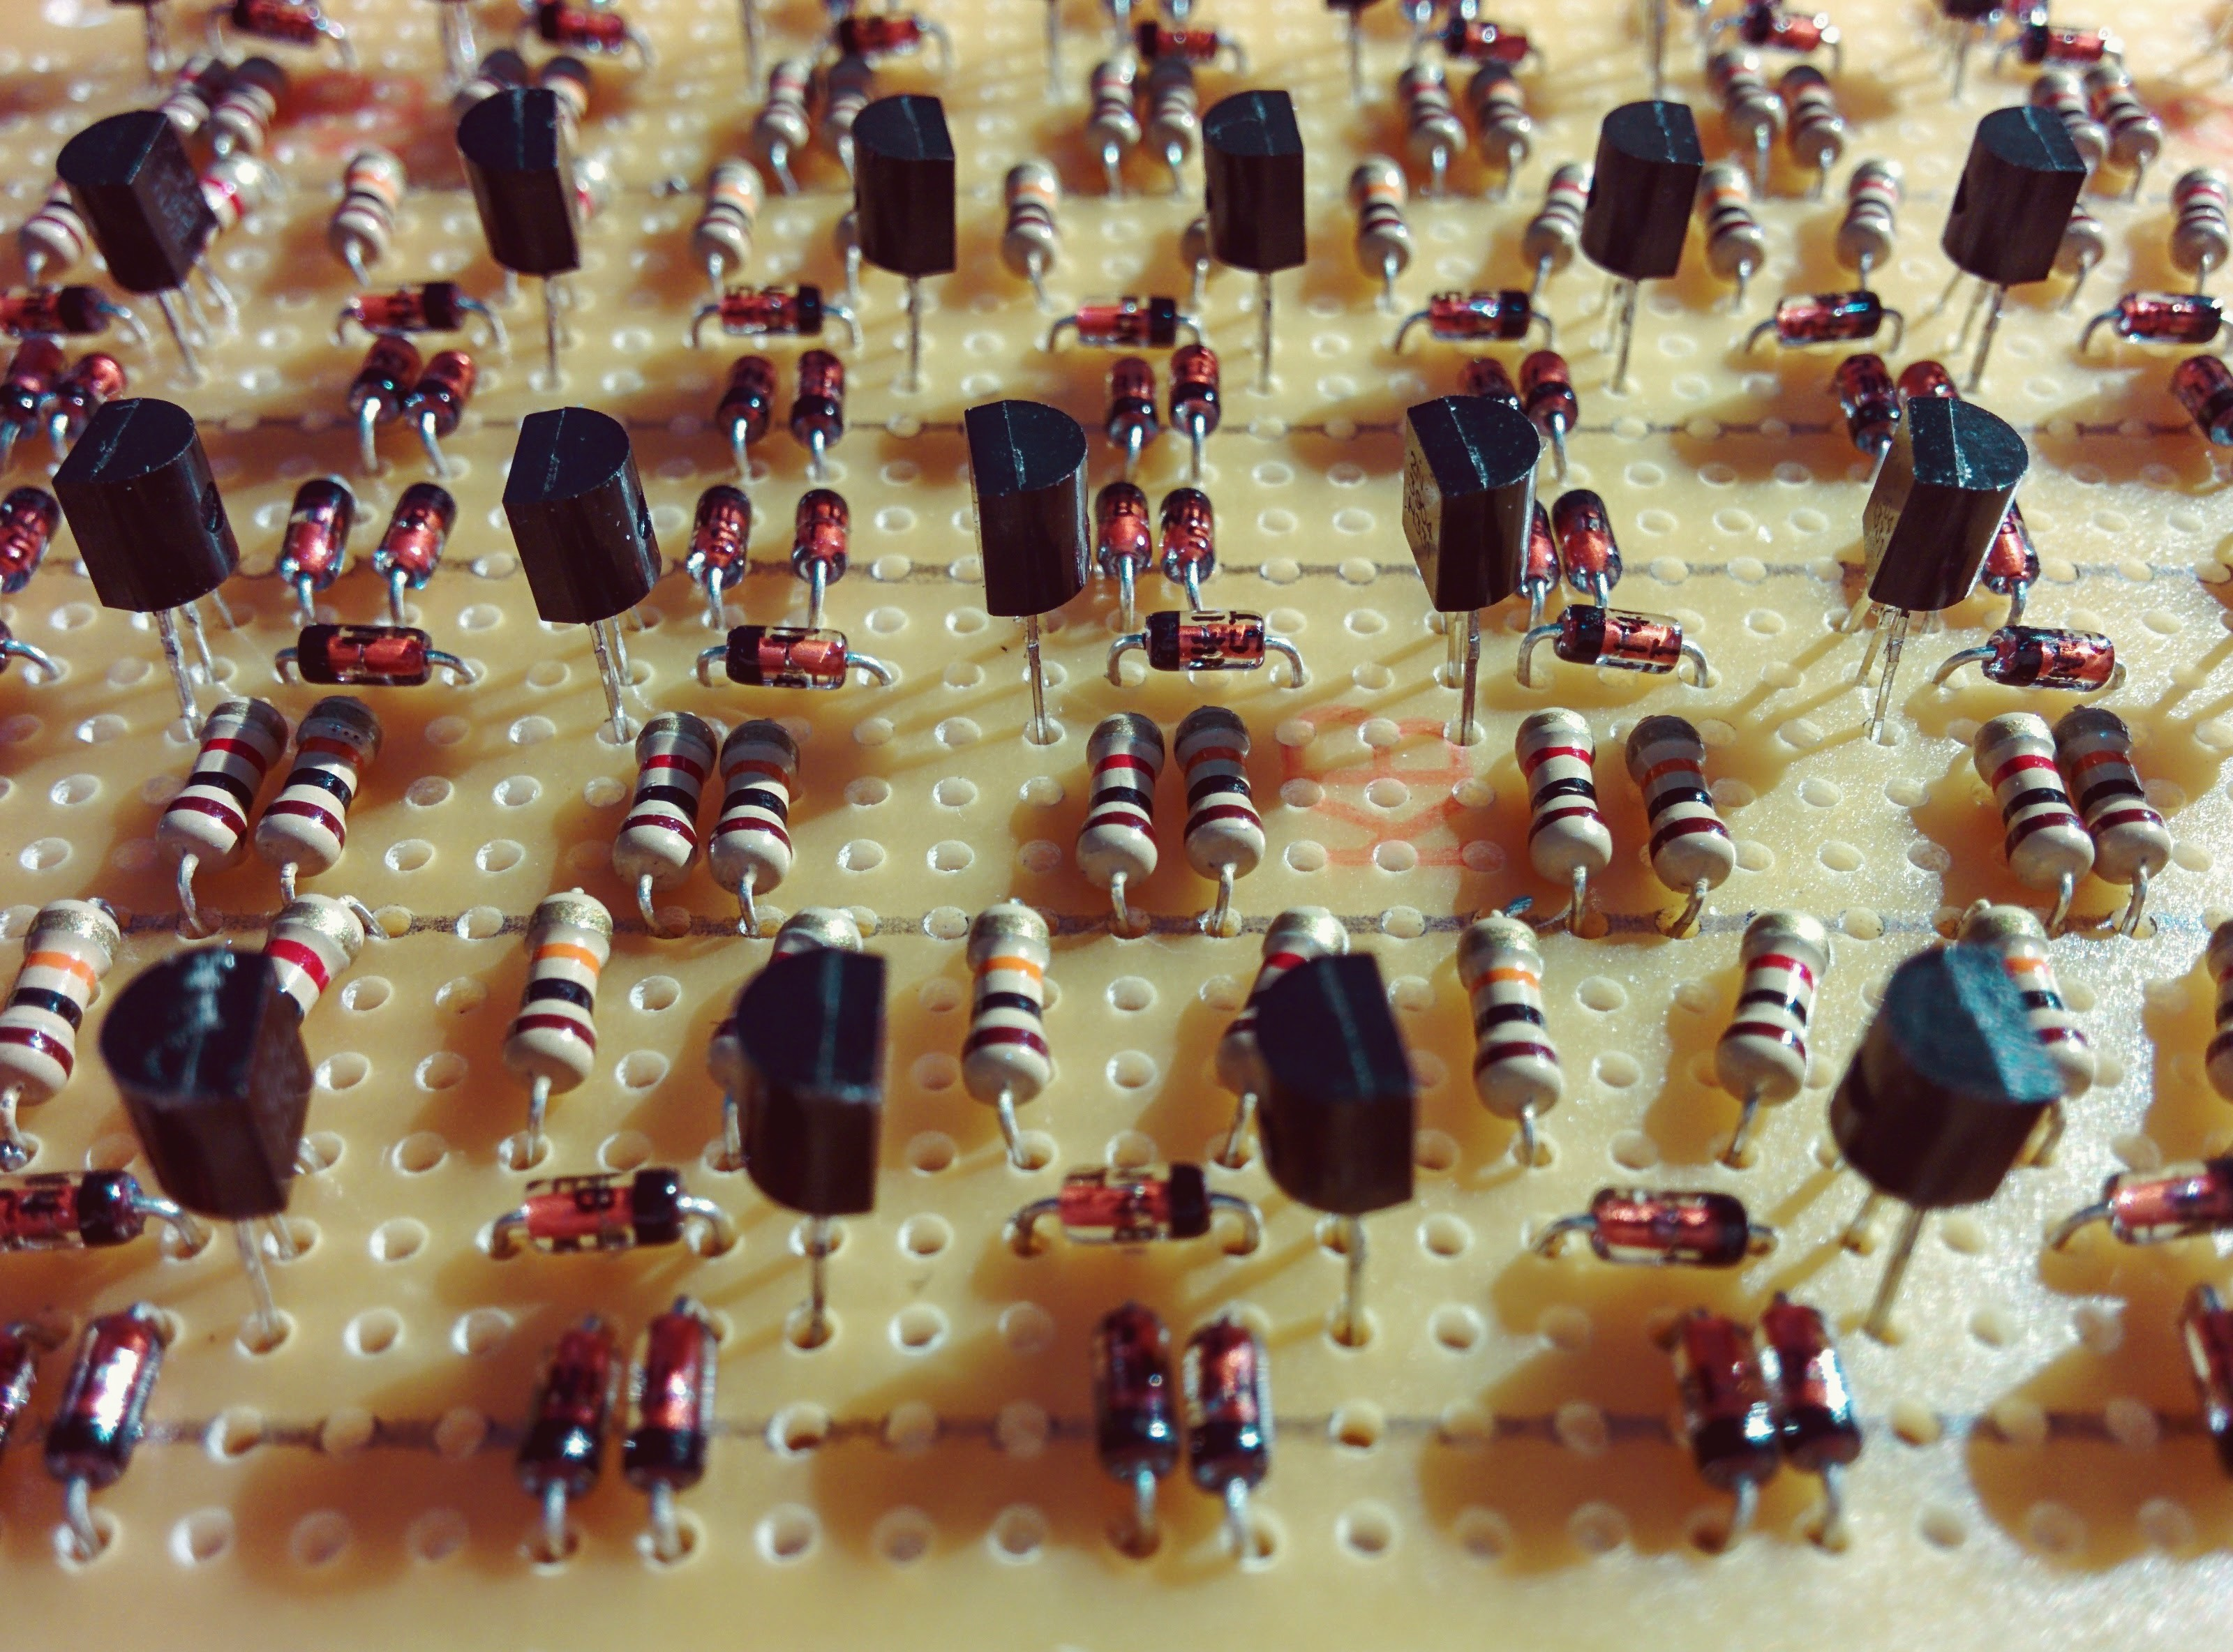 Artful picture of a protoboard